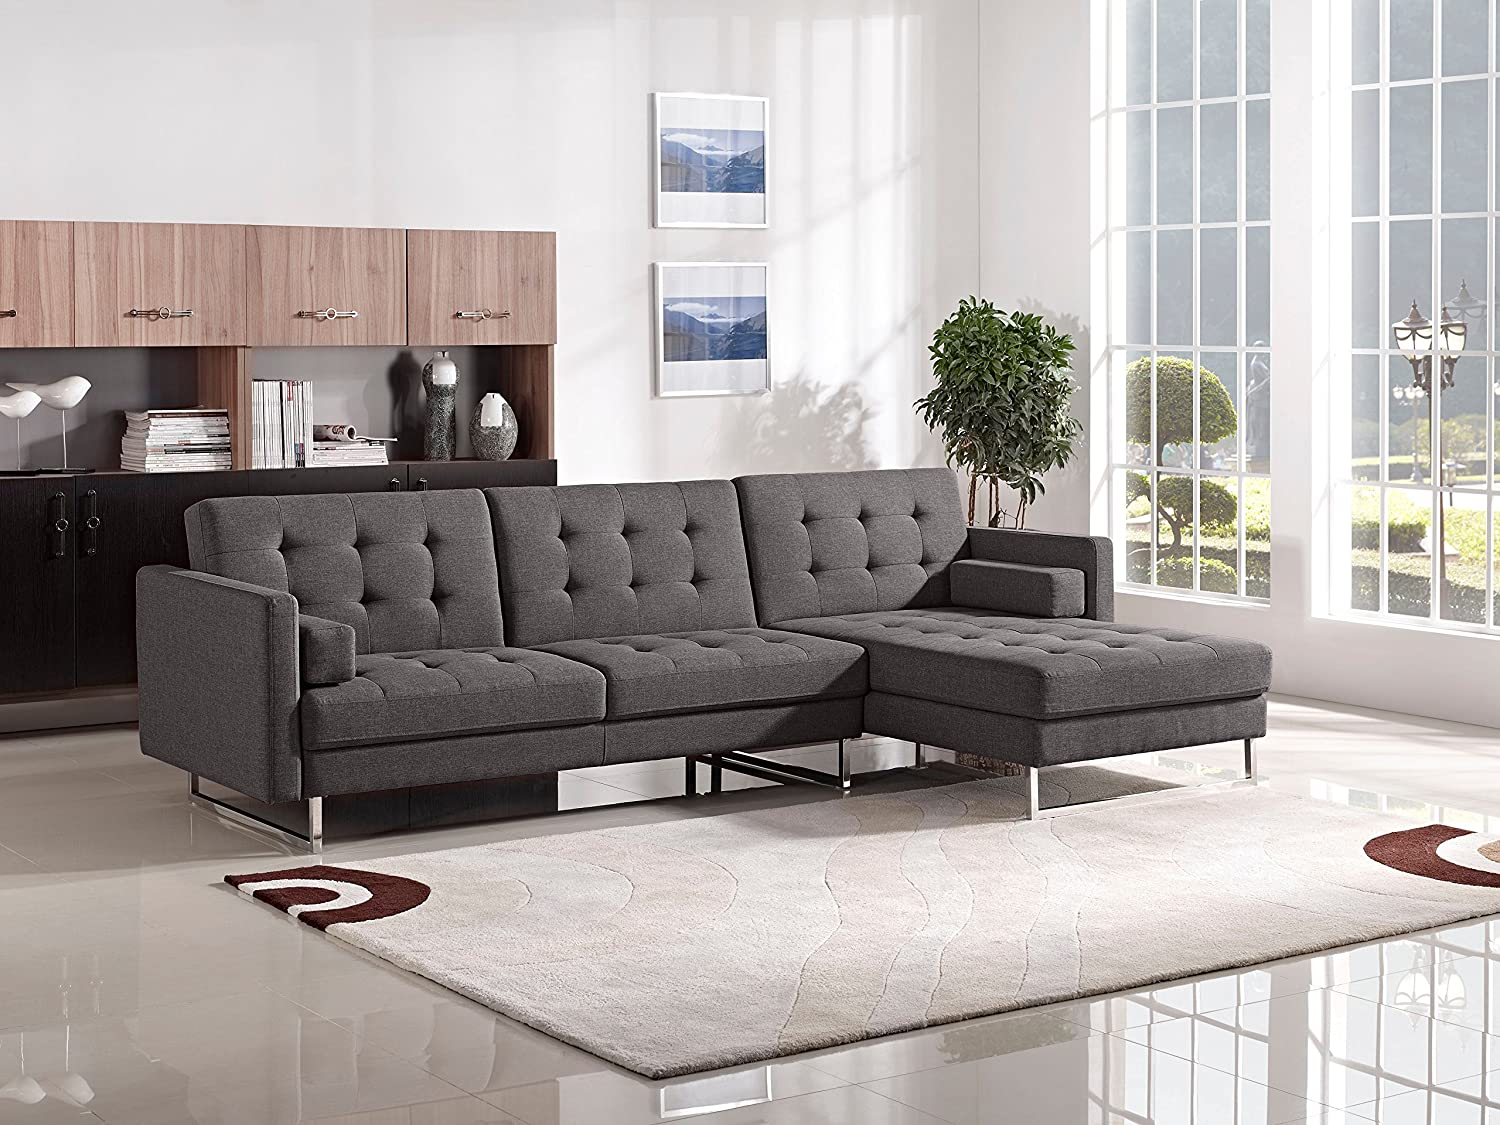 Amazon.com: Opus Convertible Tufted RF Chaise Sectional By Diamond Sofa    GREY, Includes Left Face Sofa, Right Face Chaise  # OPUSRFSECTGR: Kitchen U0026  Dining